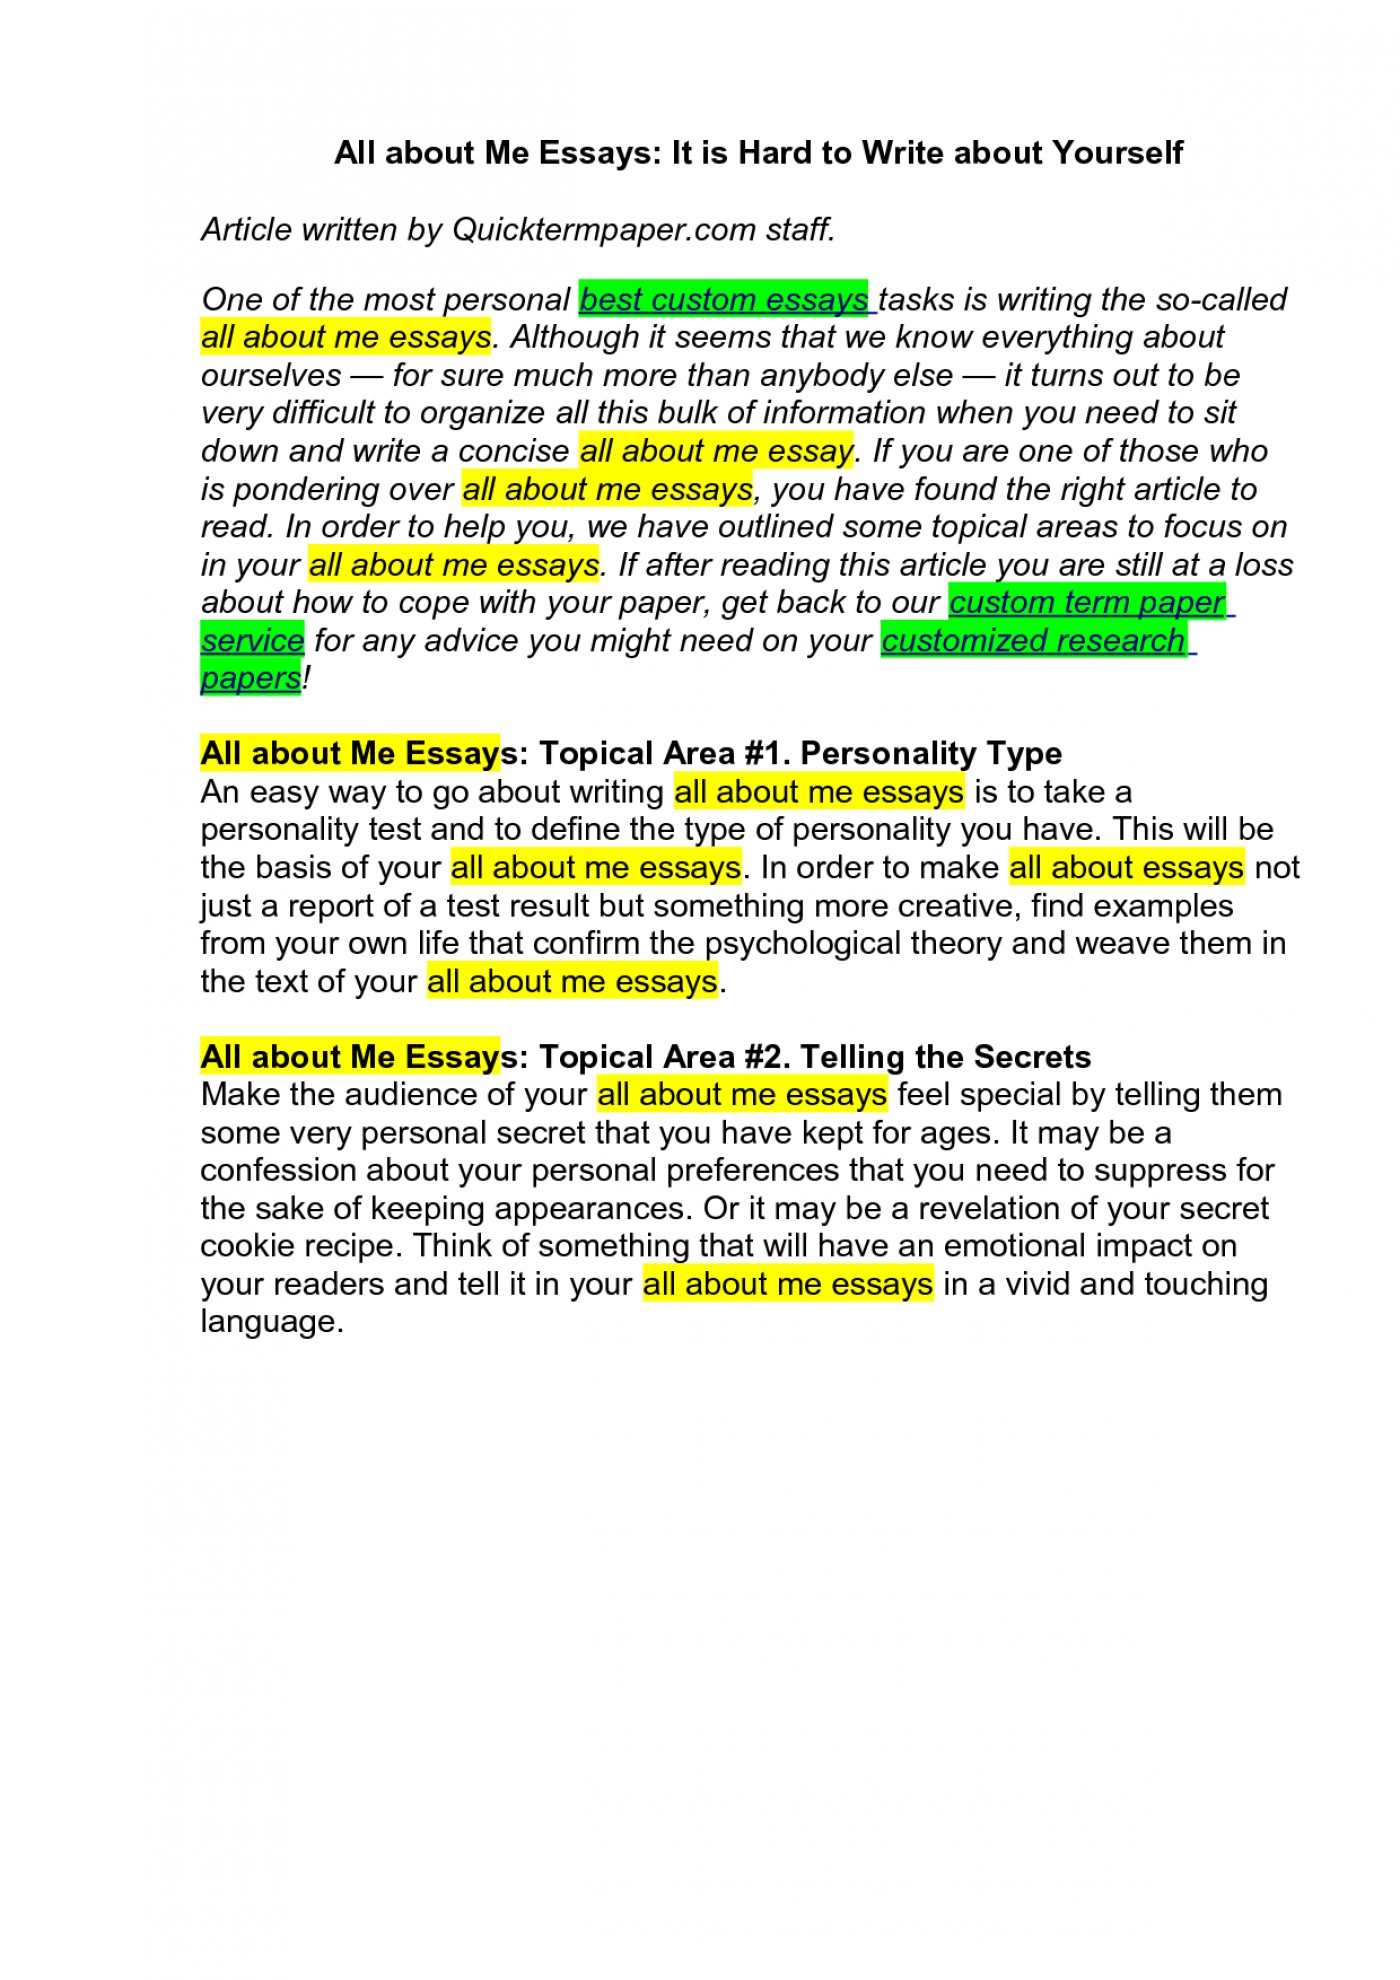 021 Essay Example How To Start An Amazing Analysis On A Book Ways With Question About Two Books 1400